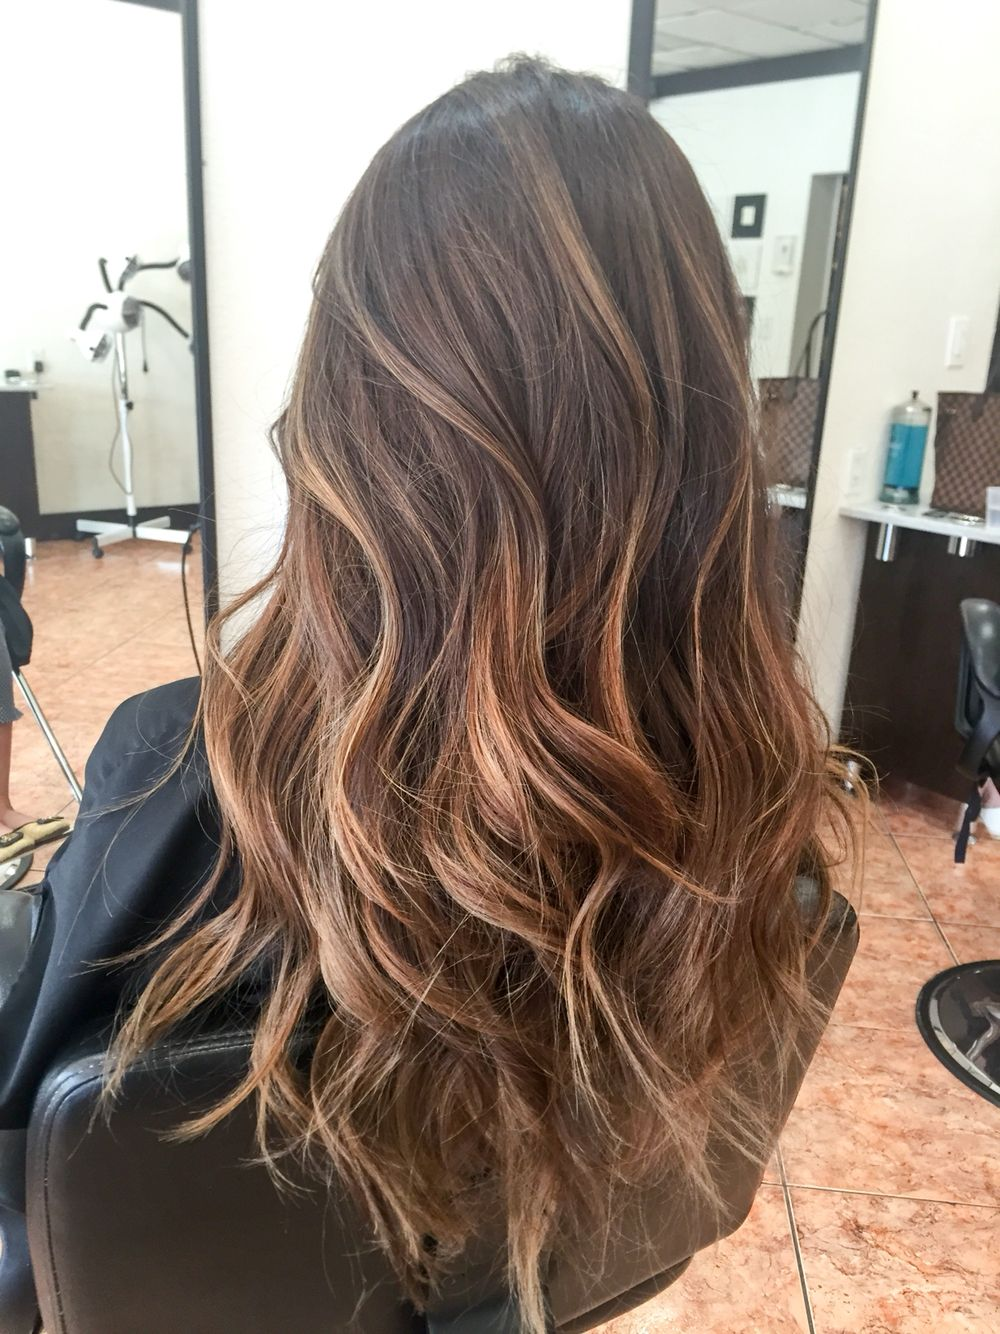 Caramel balayage highlights on dark hair best balayage - Balayage braun caramel ...